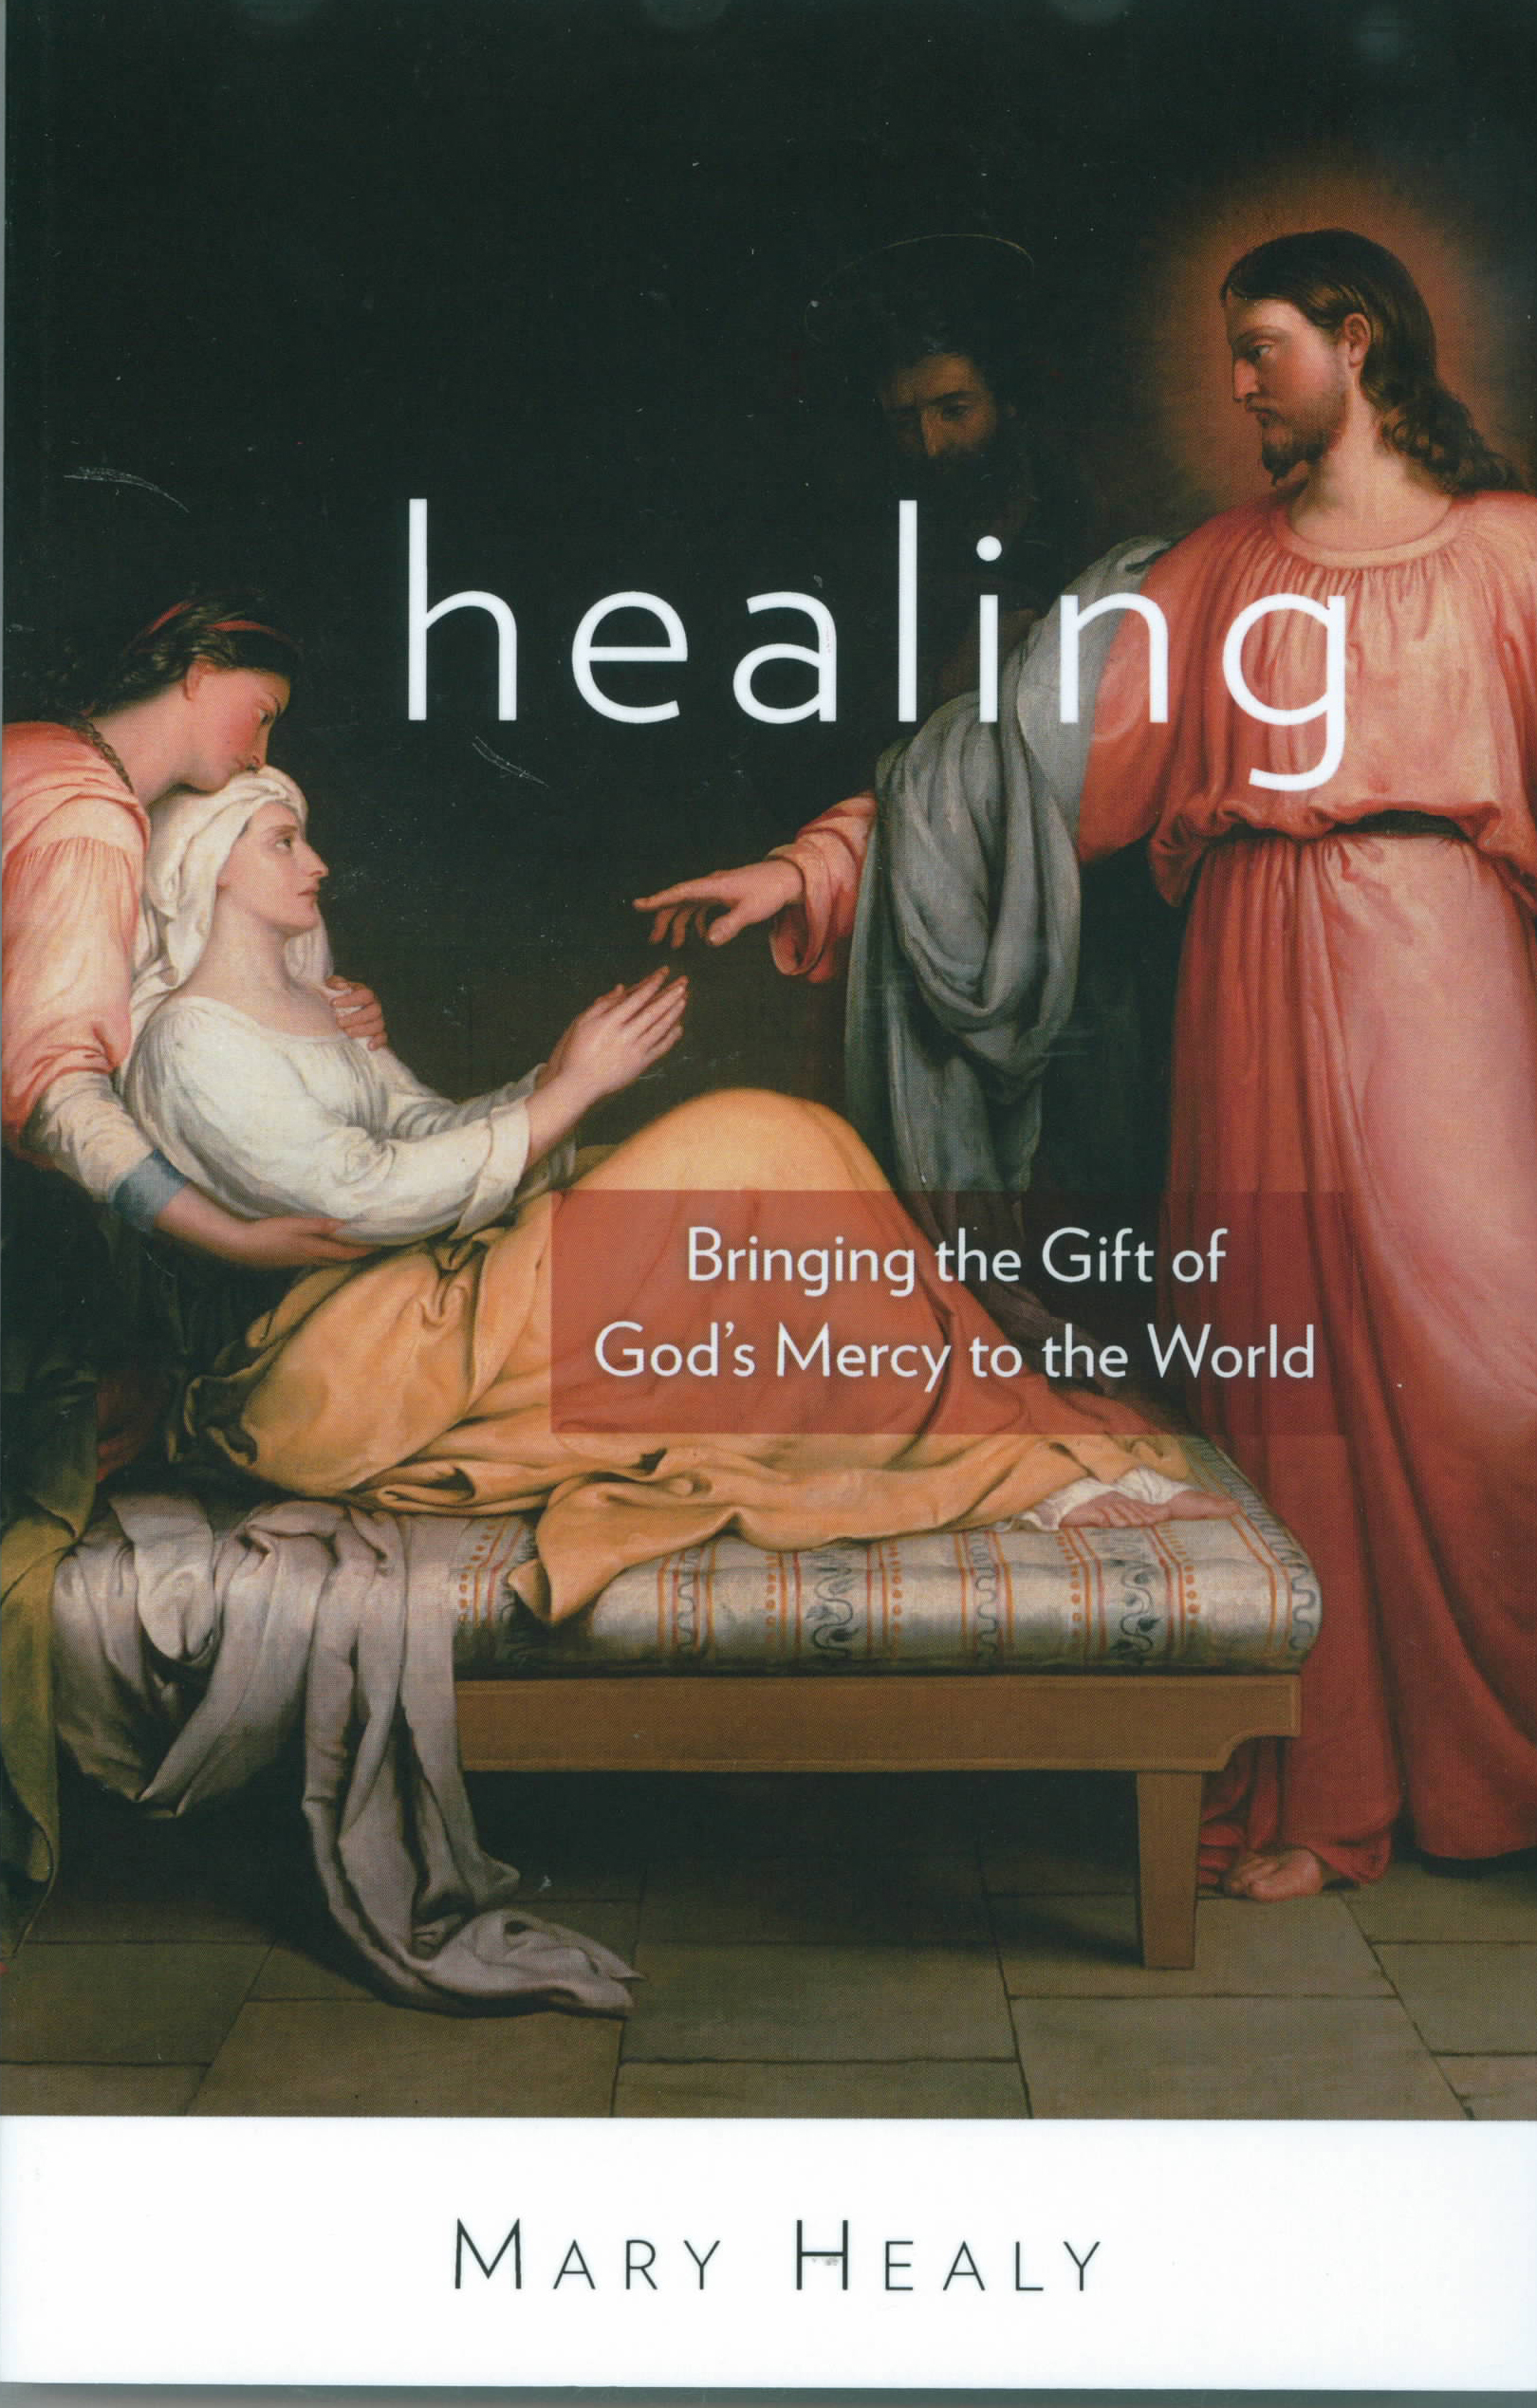 Healing: Bringing the Gift of God's Mercy to the World by Mary Healy